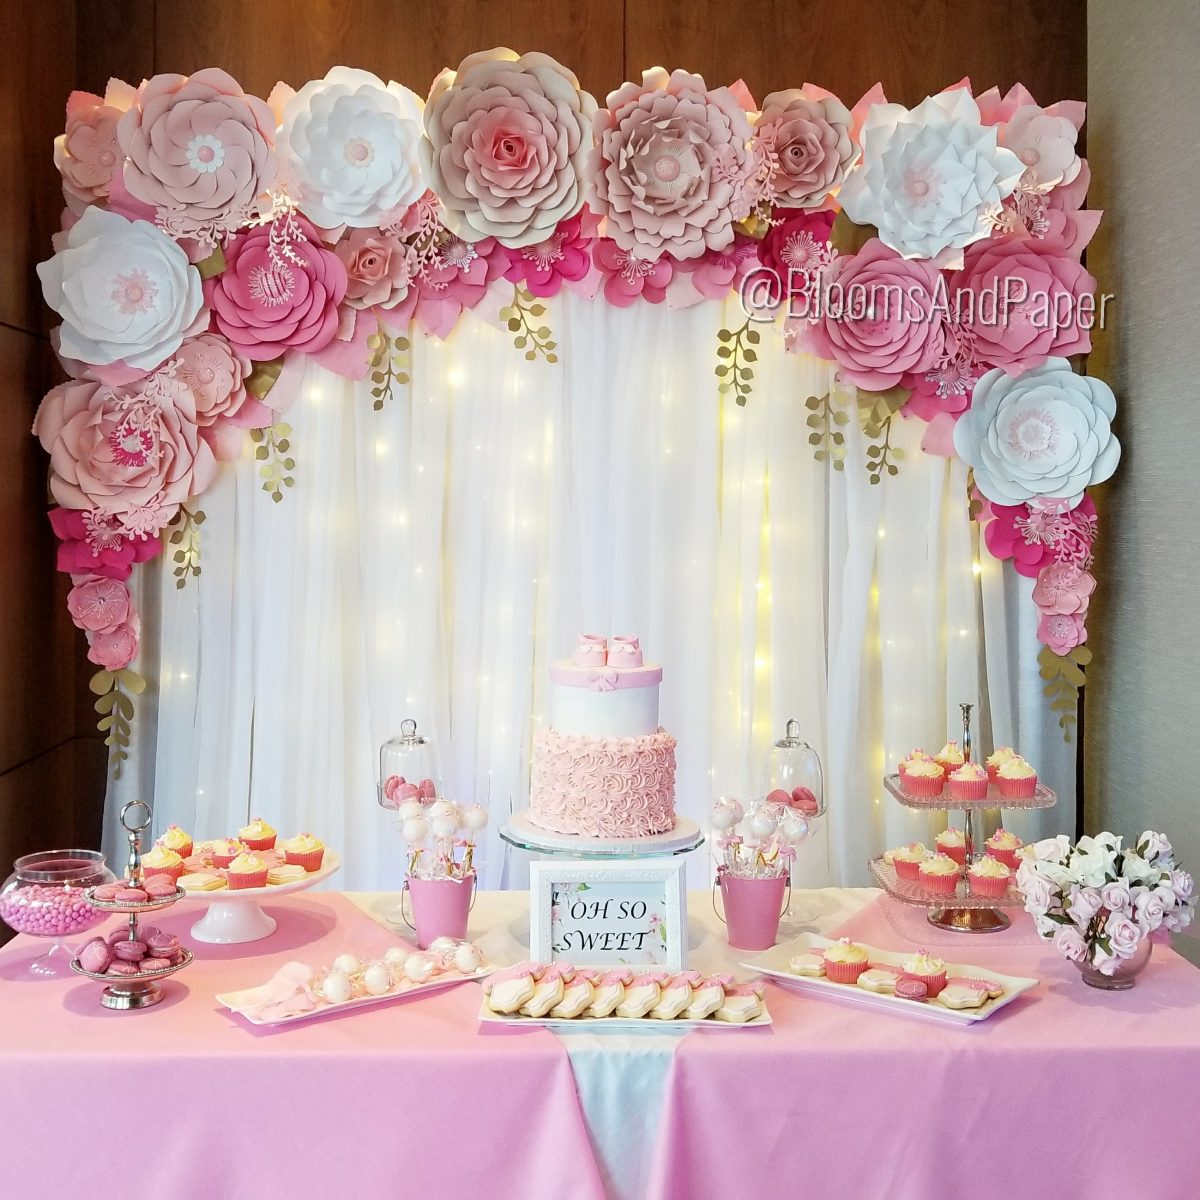 Sweet Table Decor  Styling Package  BloomsAndPaper